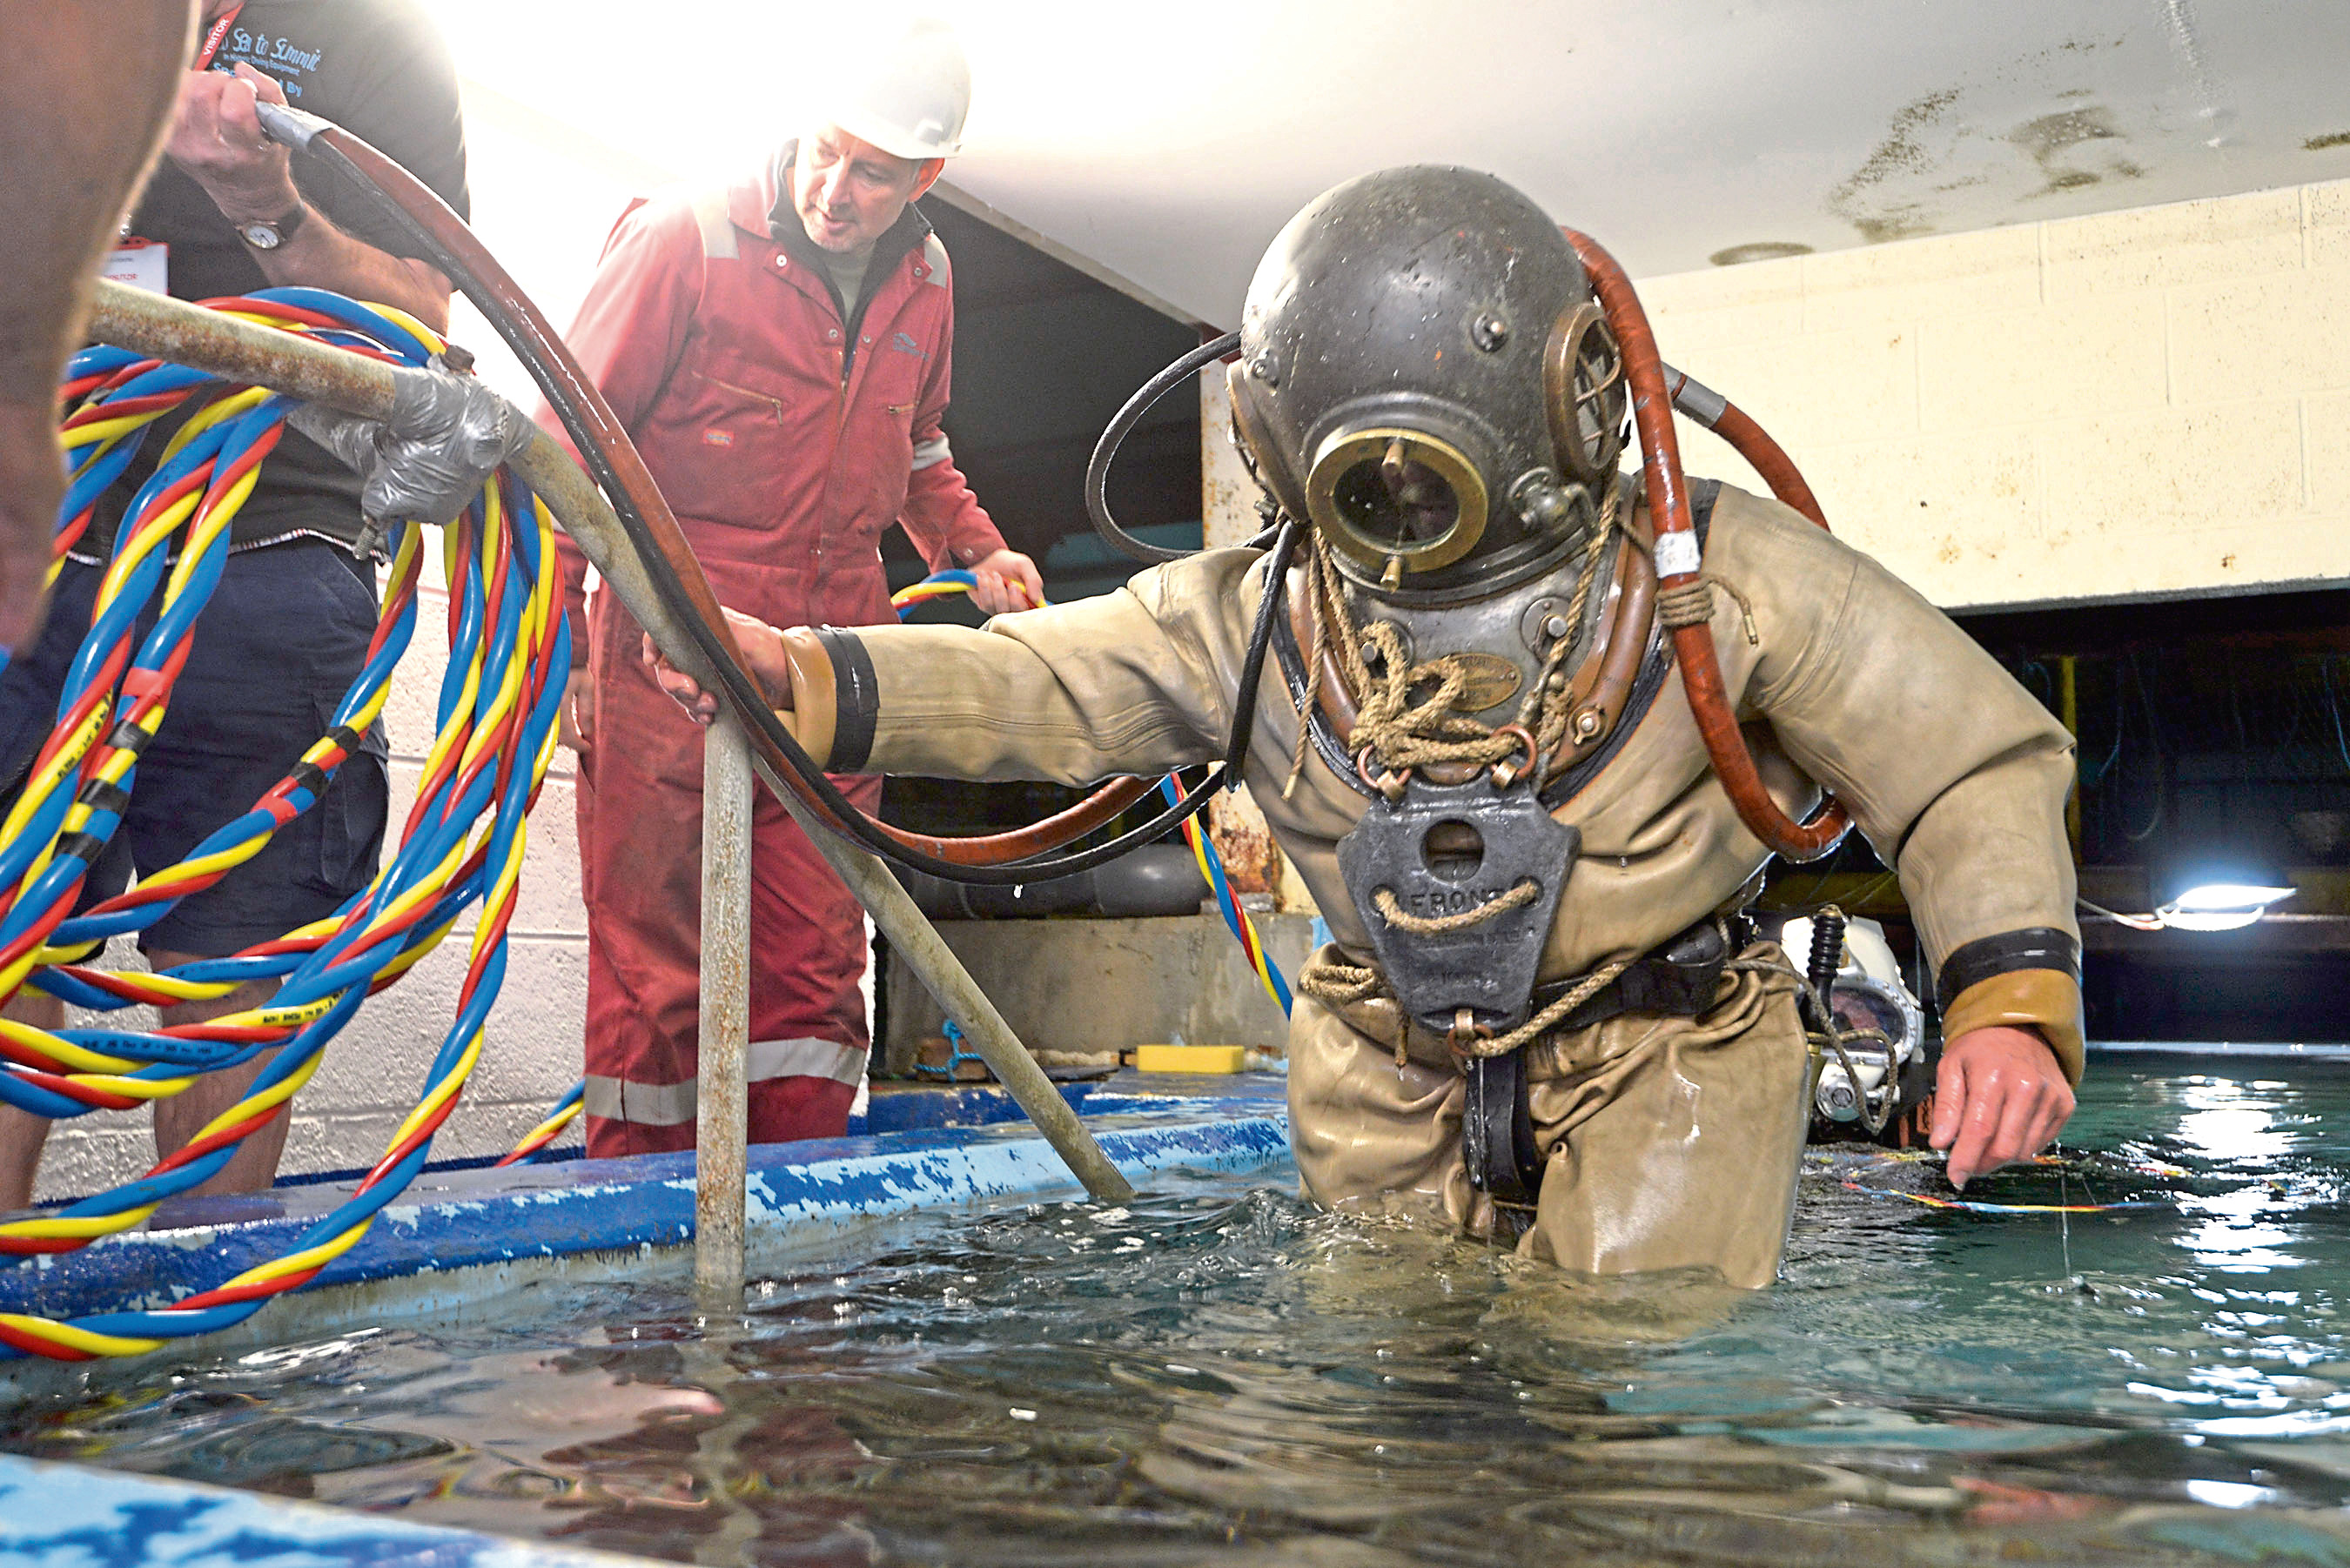 """Diver - VINTAGE DIVER 31/8/18 Paul (Ginge) Guiver emerges from the tank at Fort William's 'Underwater Centre"""". PICTURE IAIN FERGUSON, THE WRITE IMAGE"""